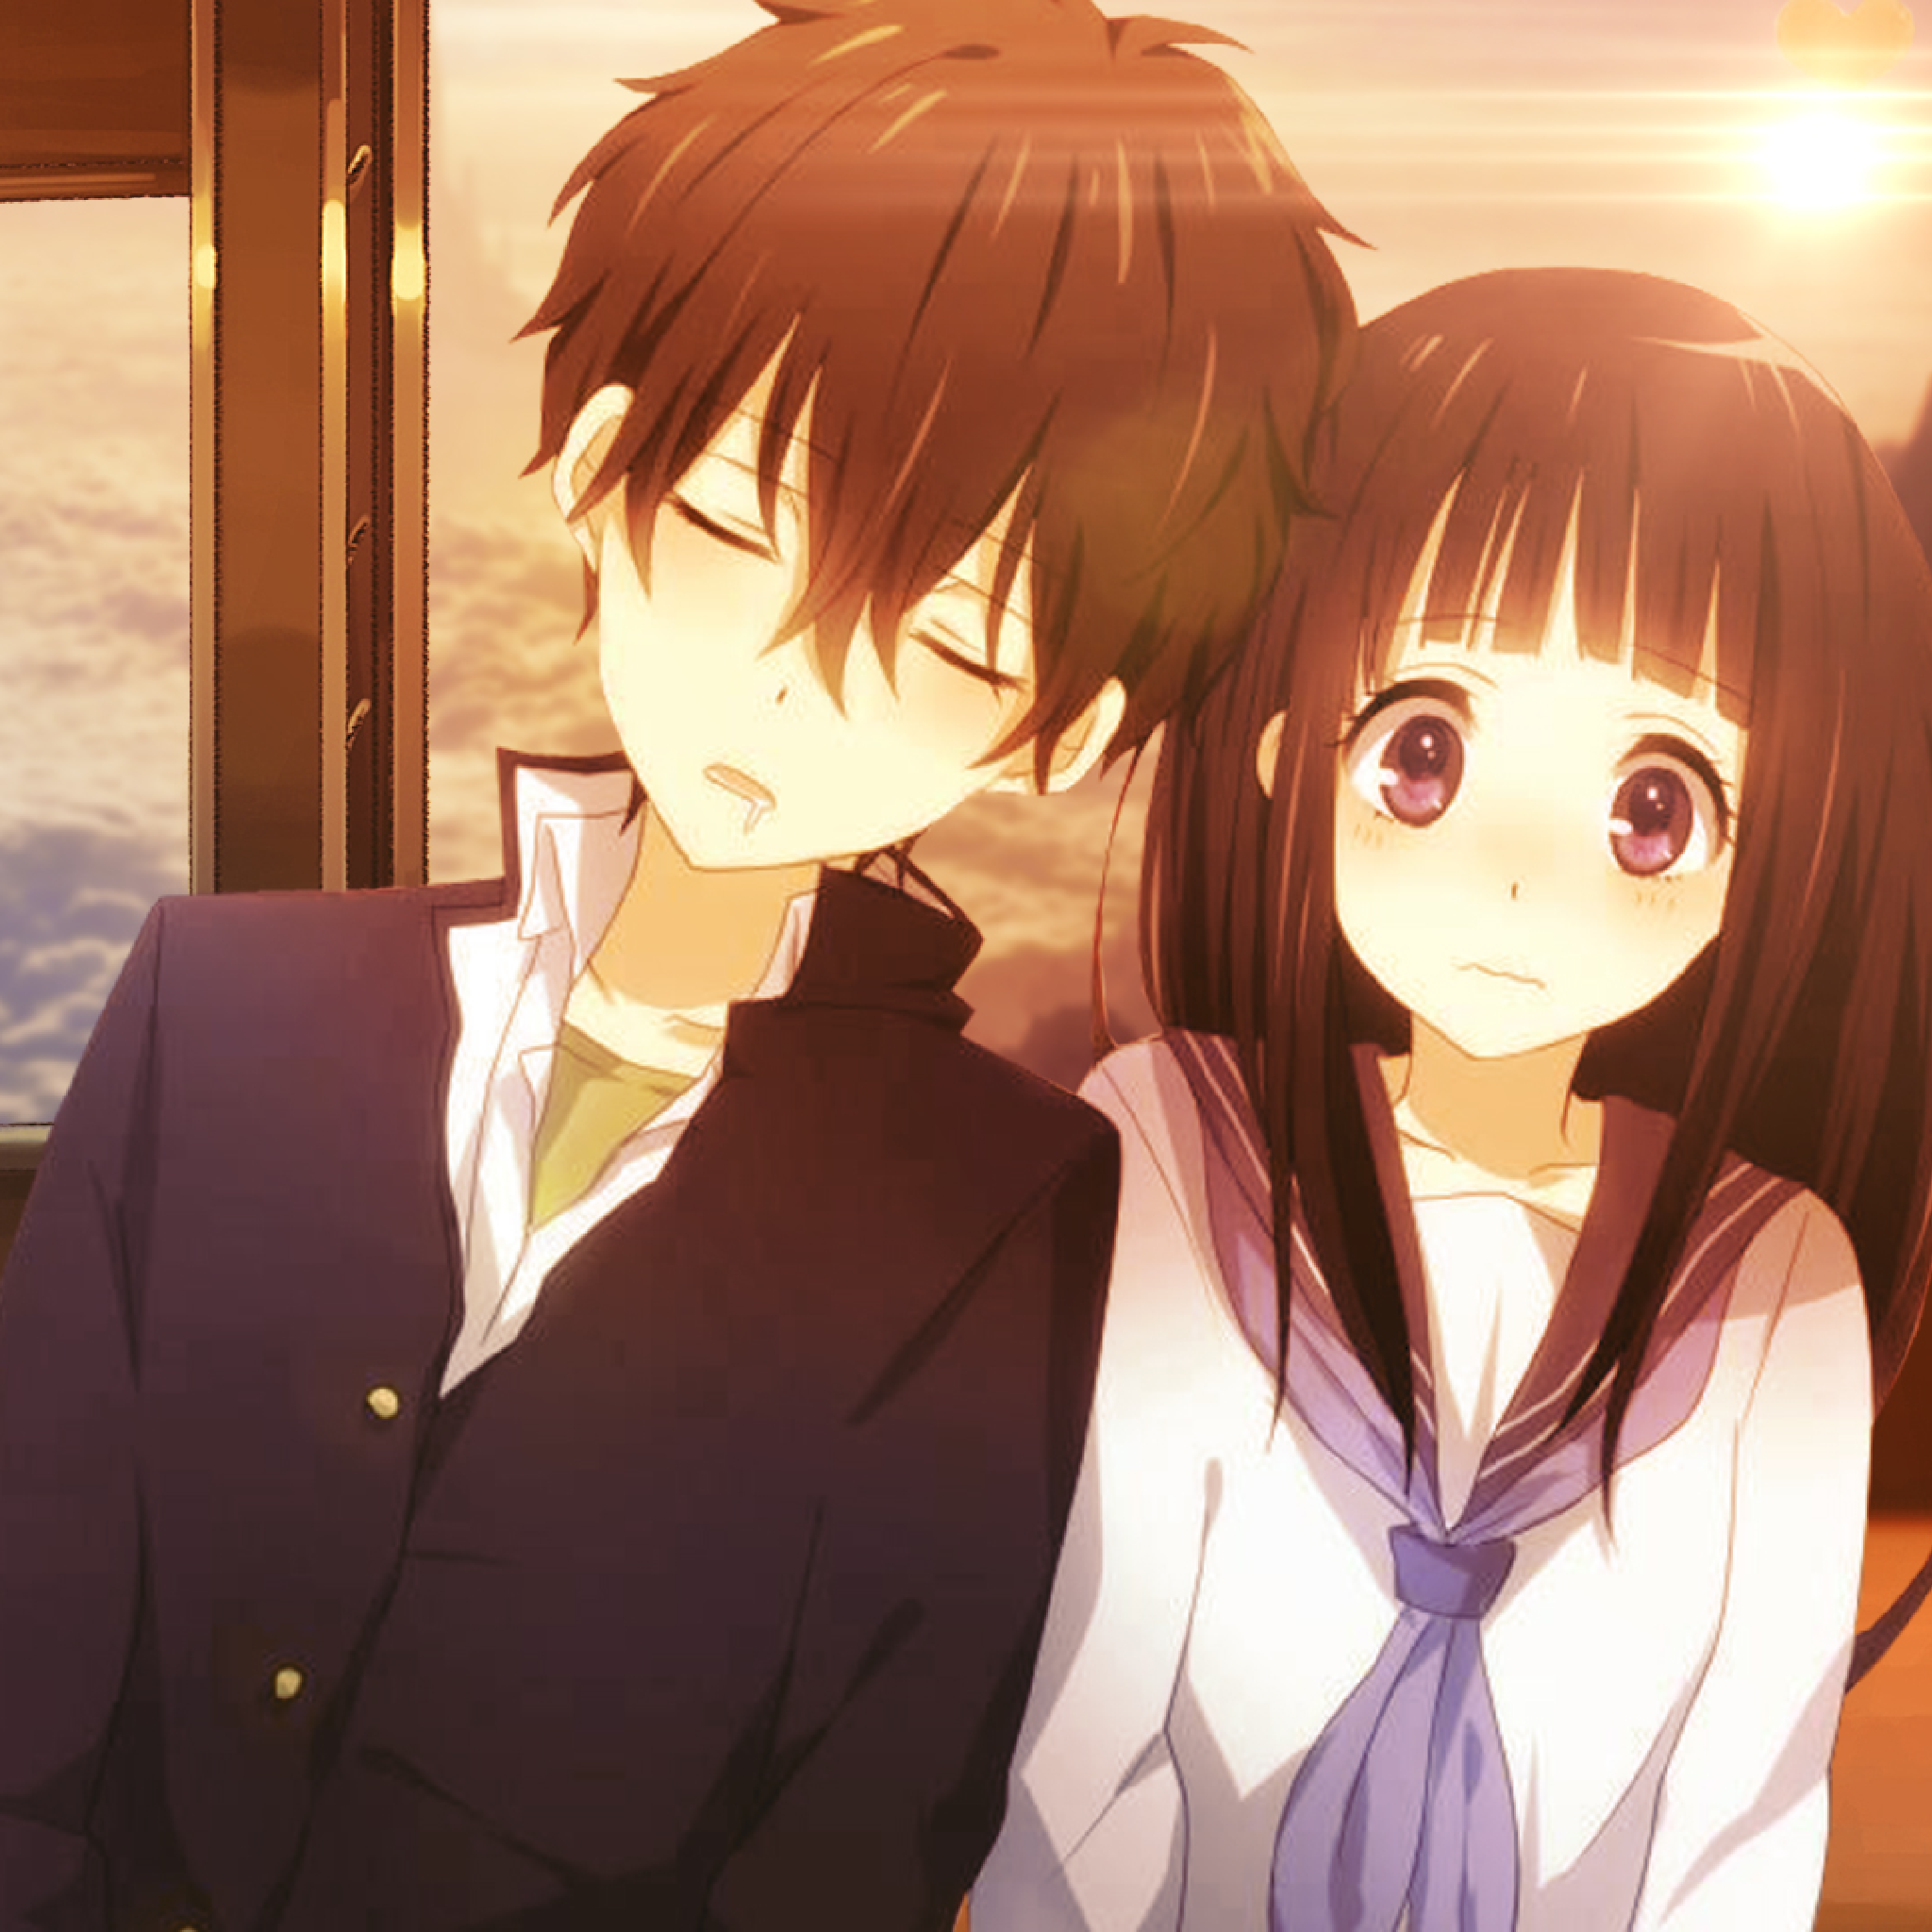 Love At First Sight - Tap to see more of teh cutest anime ...